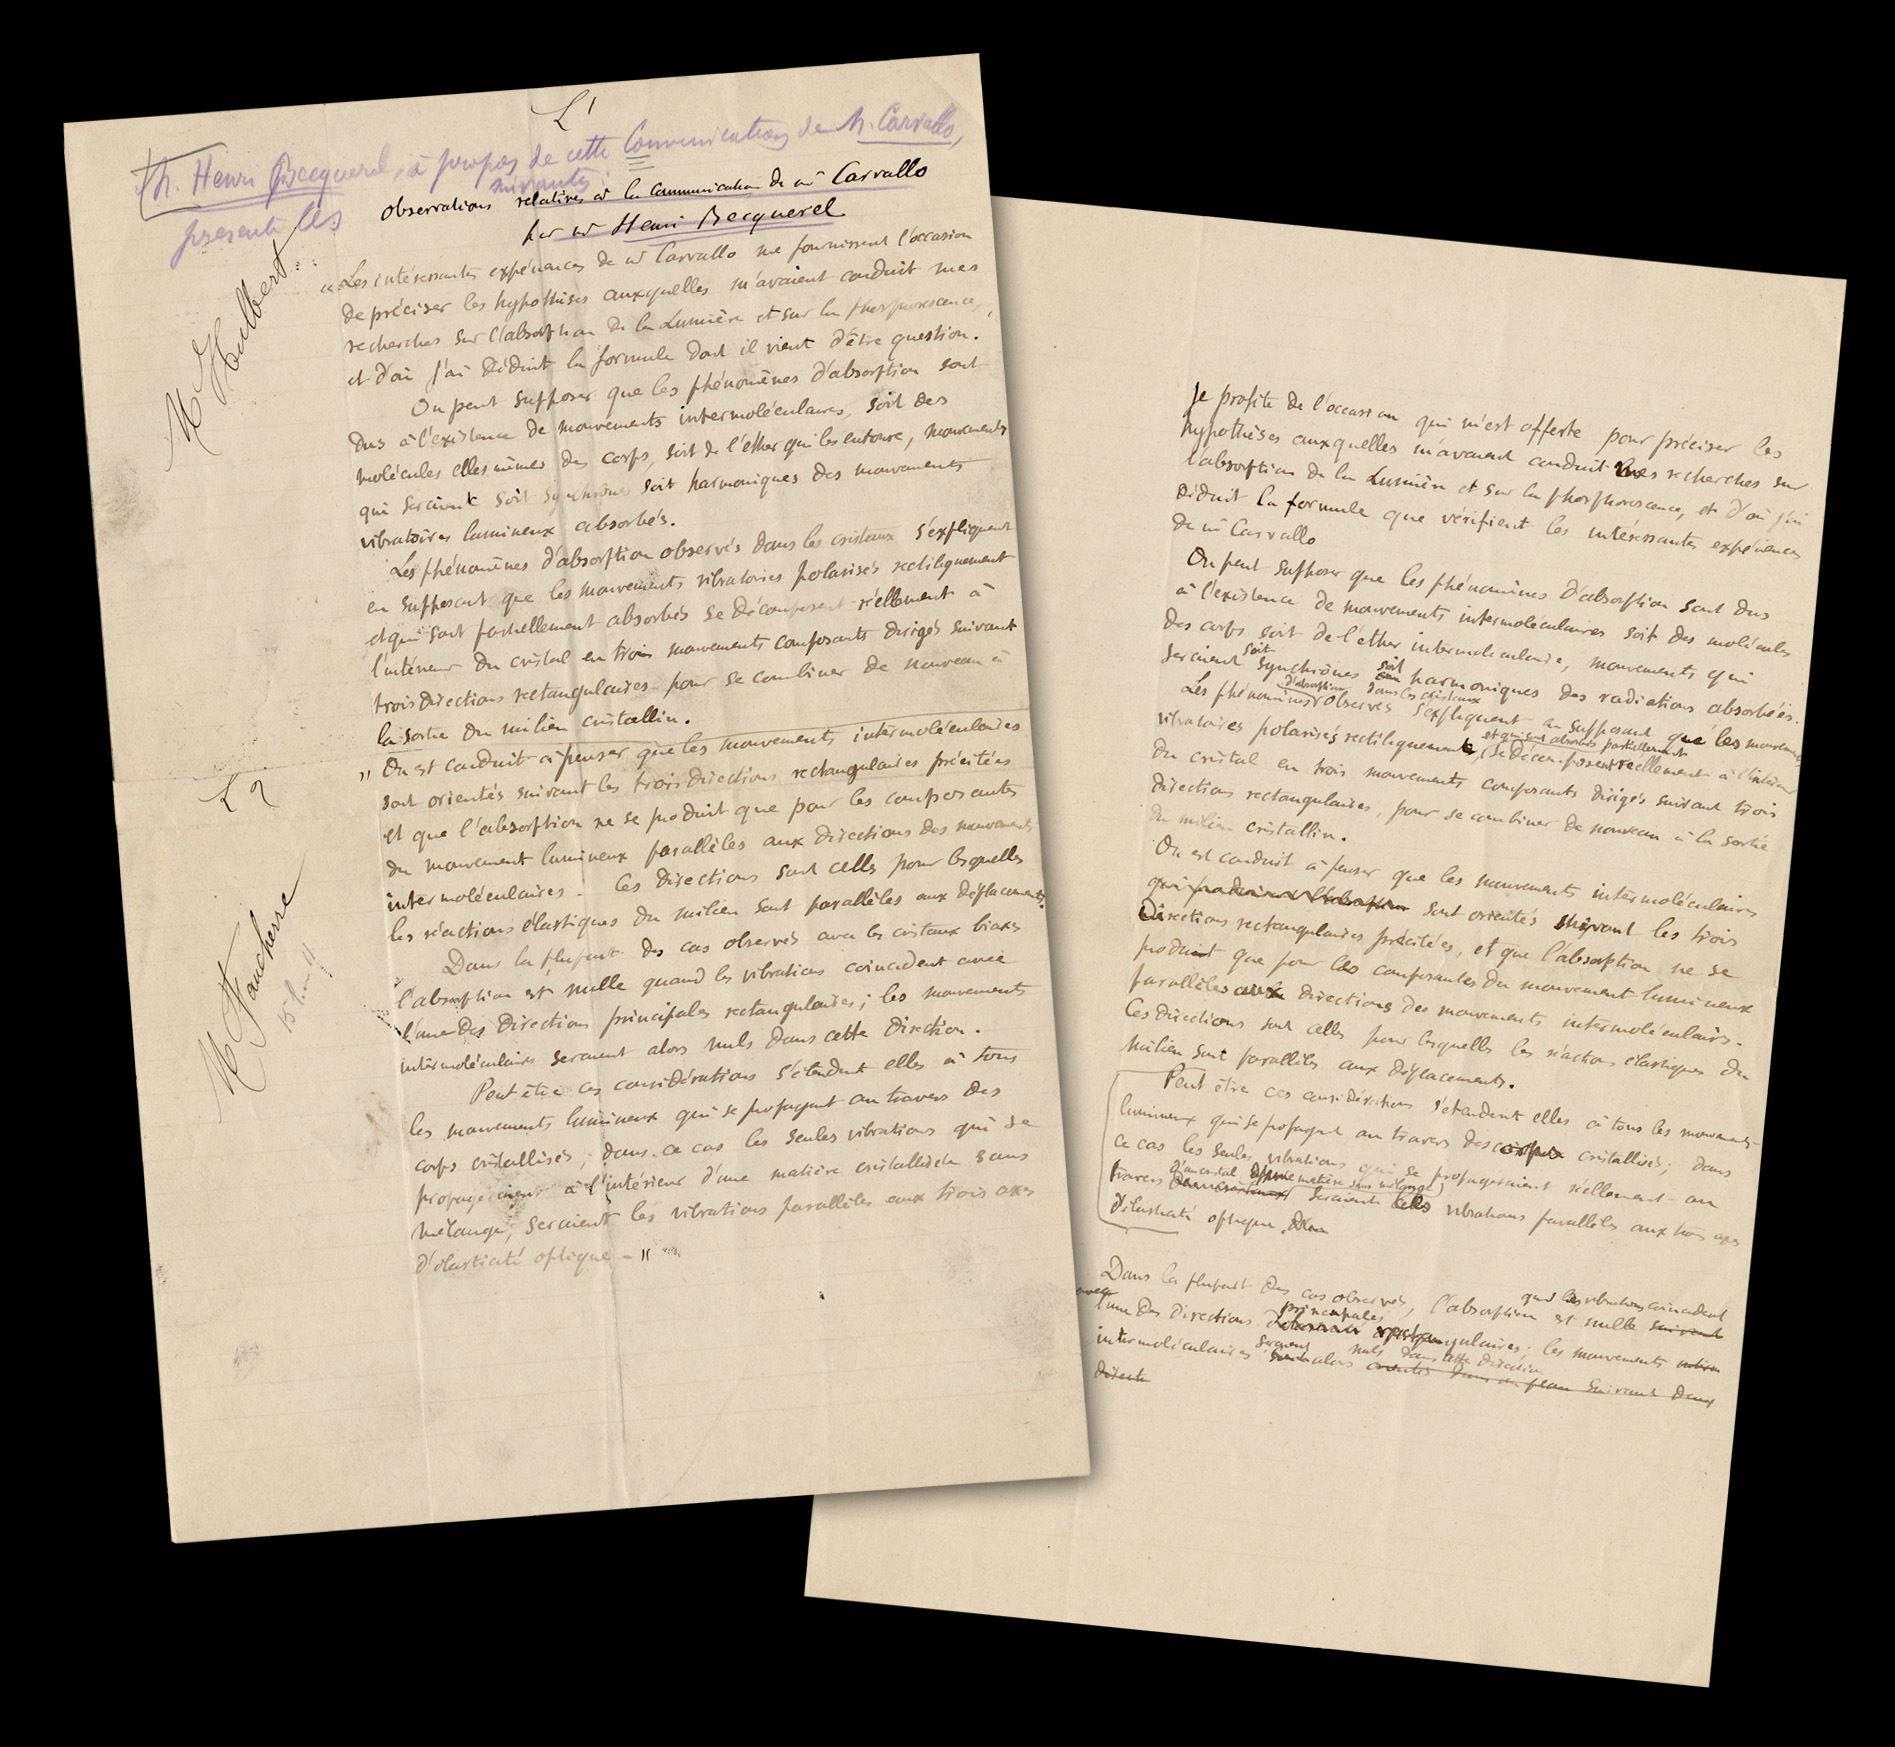 Henri Becquerel, Nobel Prize-Winning French Physicist, Autograph Manuscript Signed Re: the Crystalline Light Absorption & Vibration Debate!